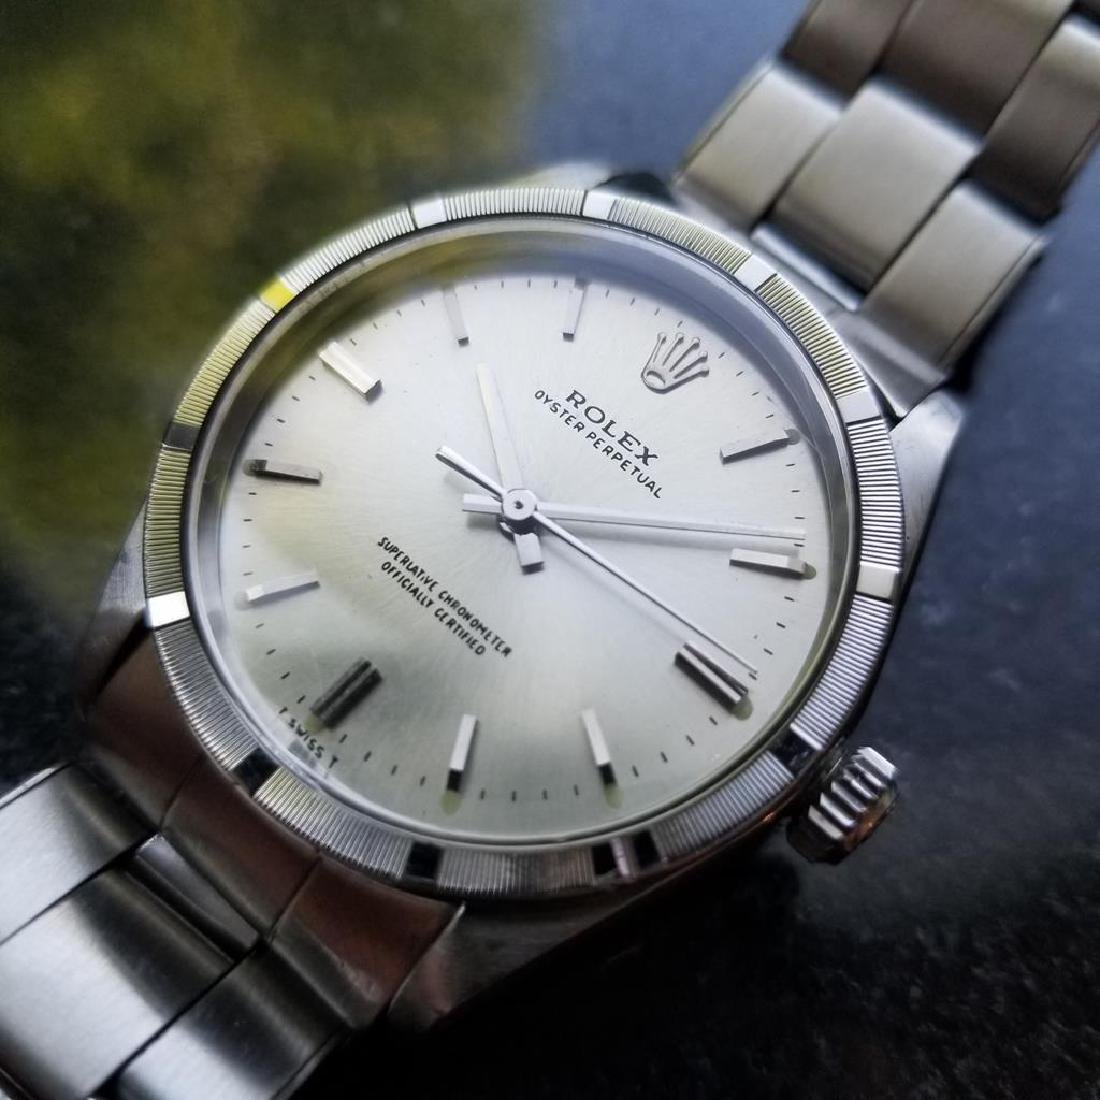 ROLEX Men's Oyster Perpetual 1007 Automatic cal.1570